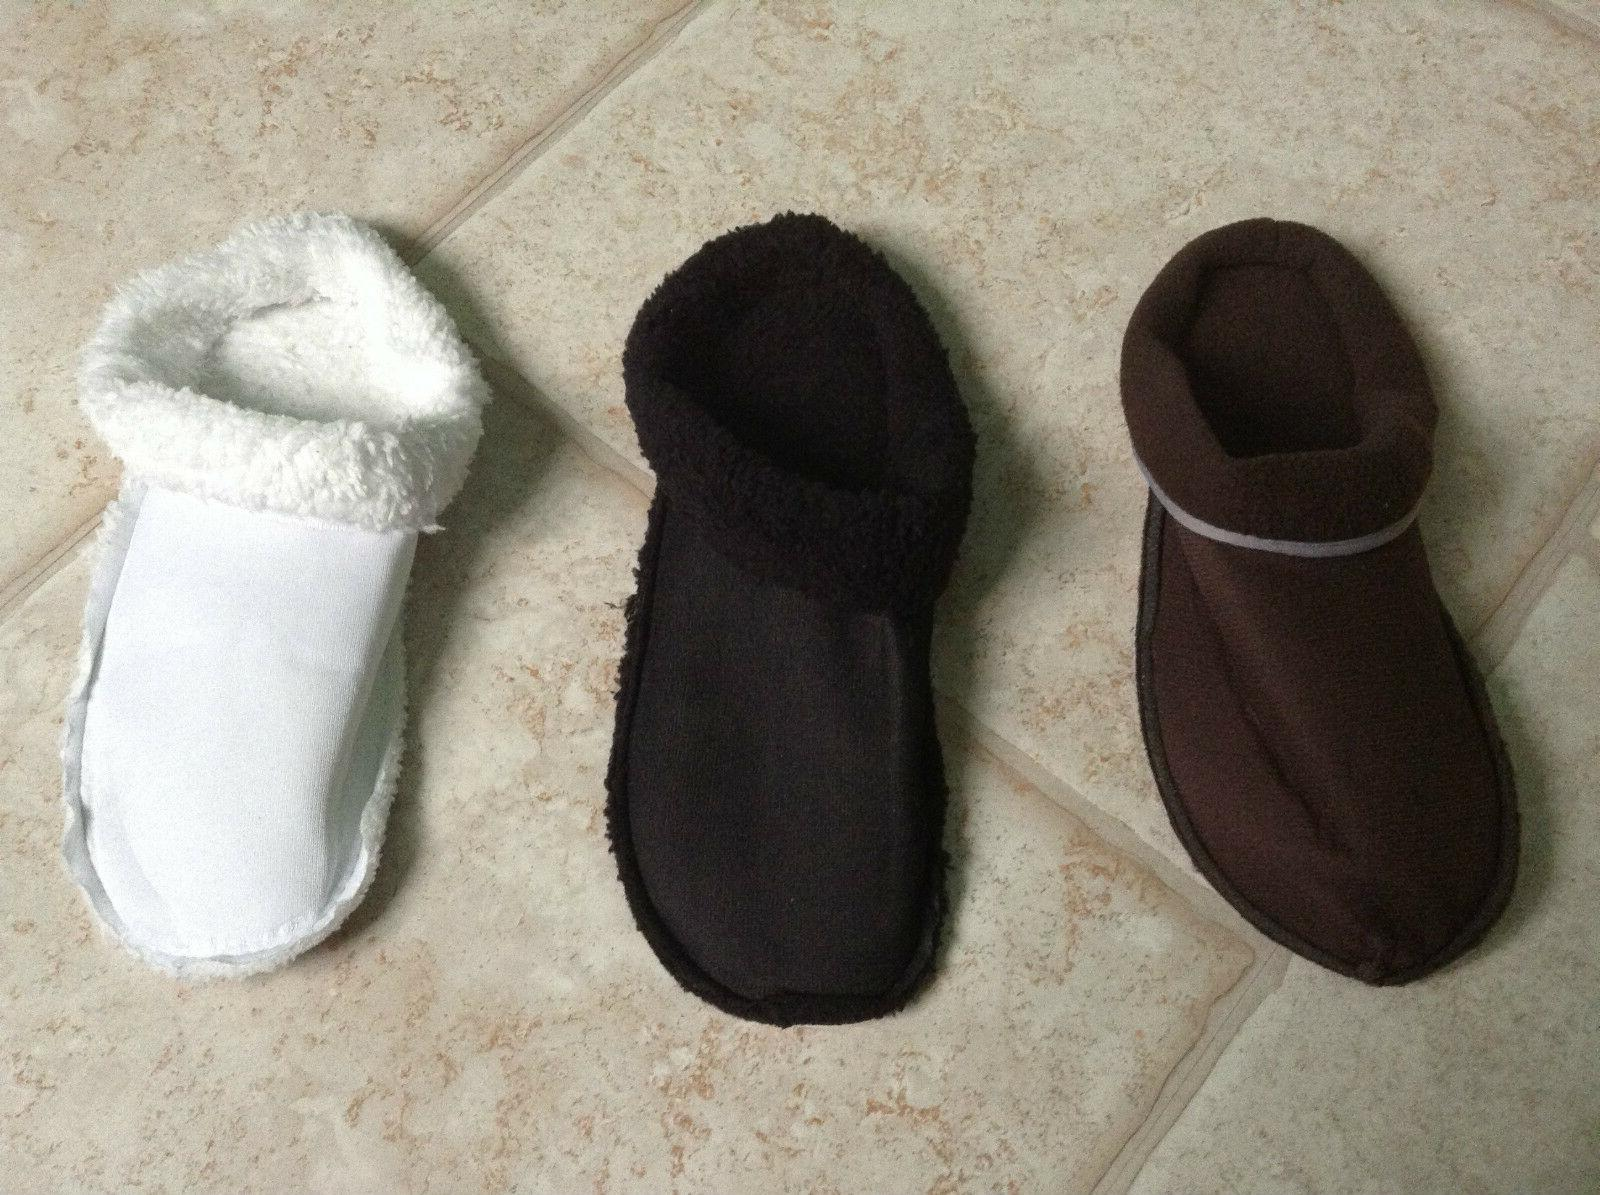 replacement liners insoles inserts for mammoth crocs